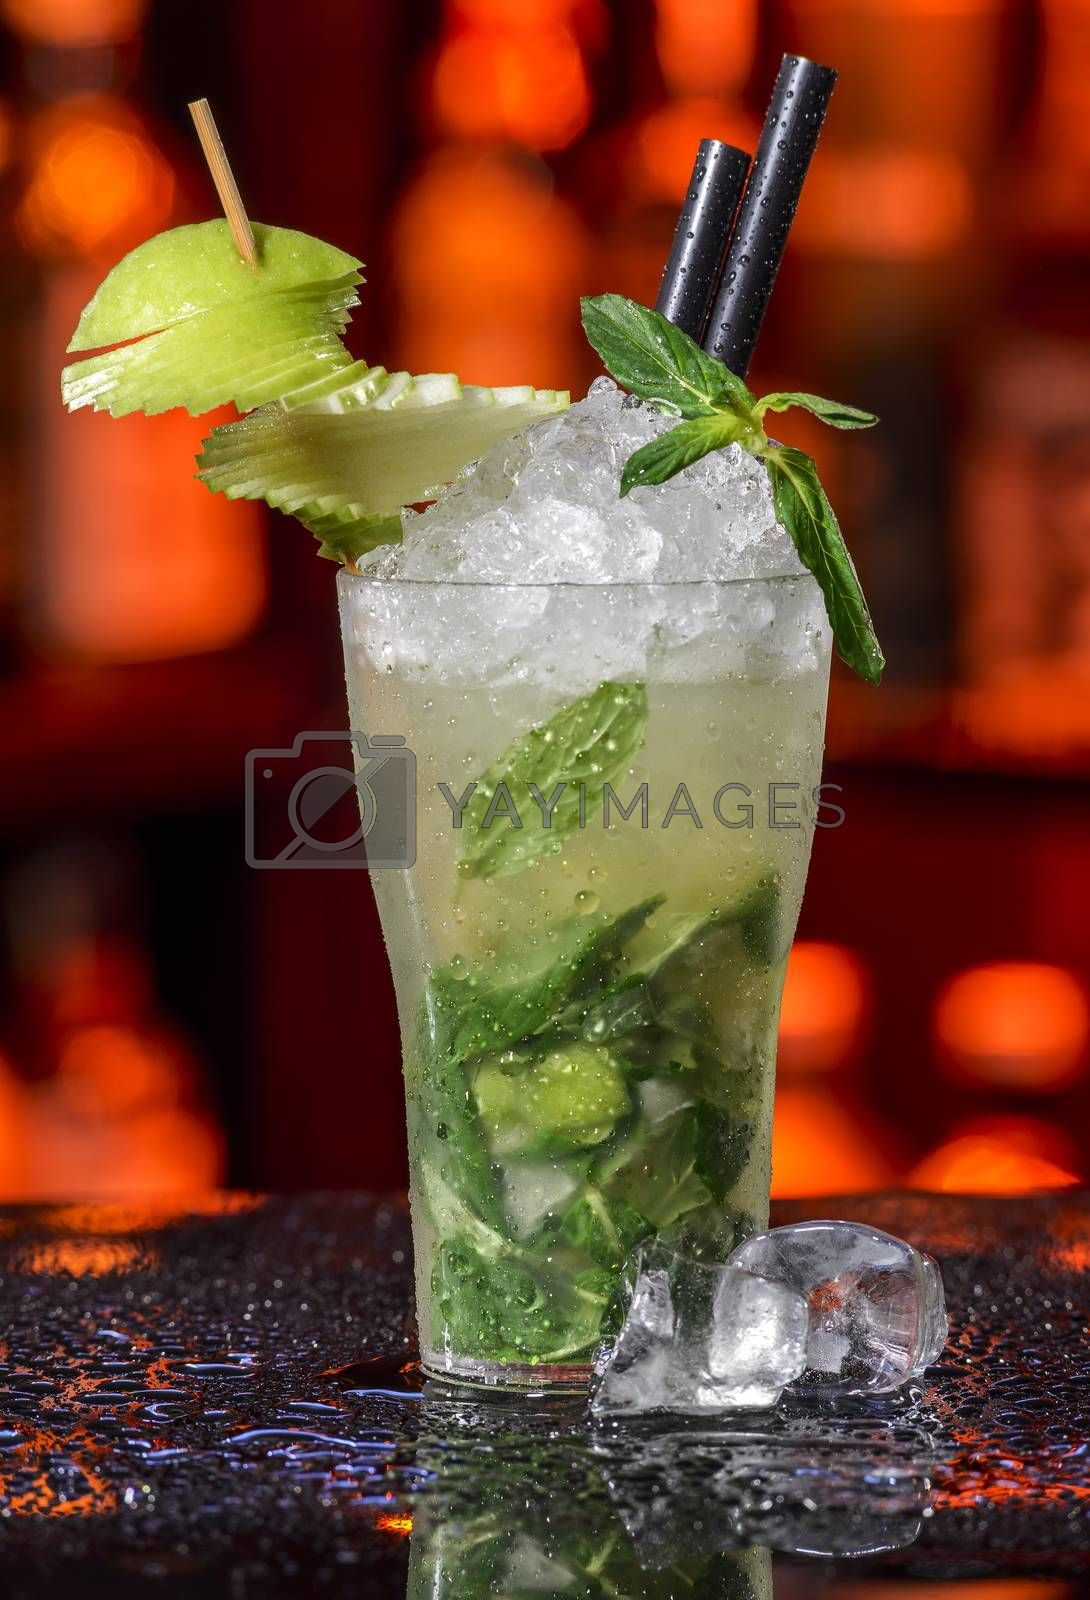 Royalty free image of Pear mojitos by emirkoo